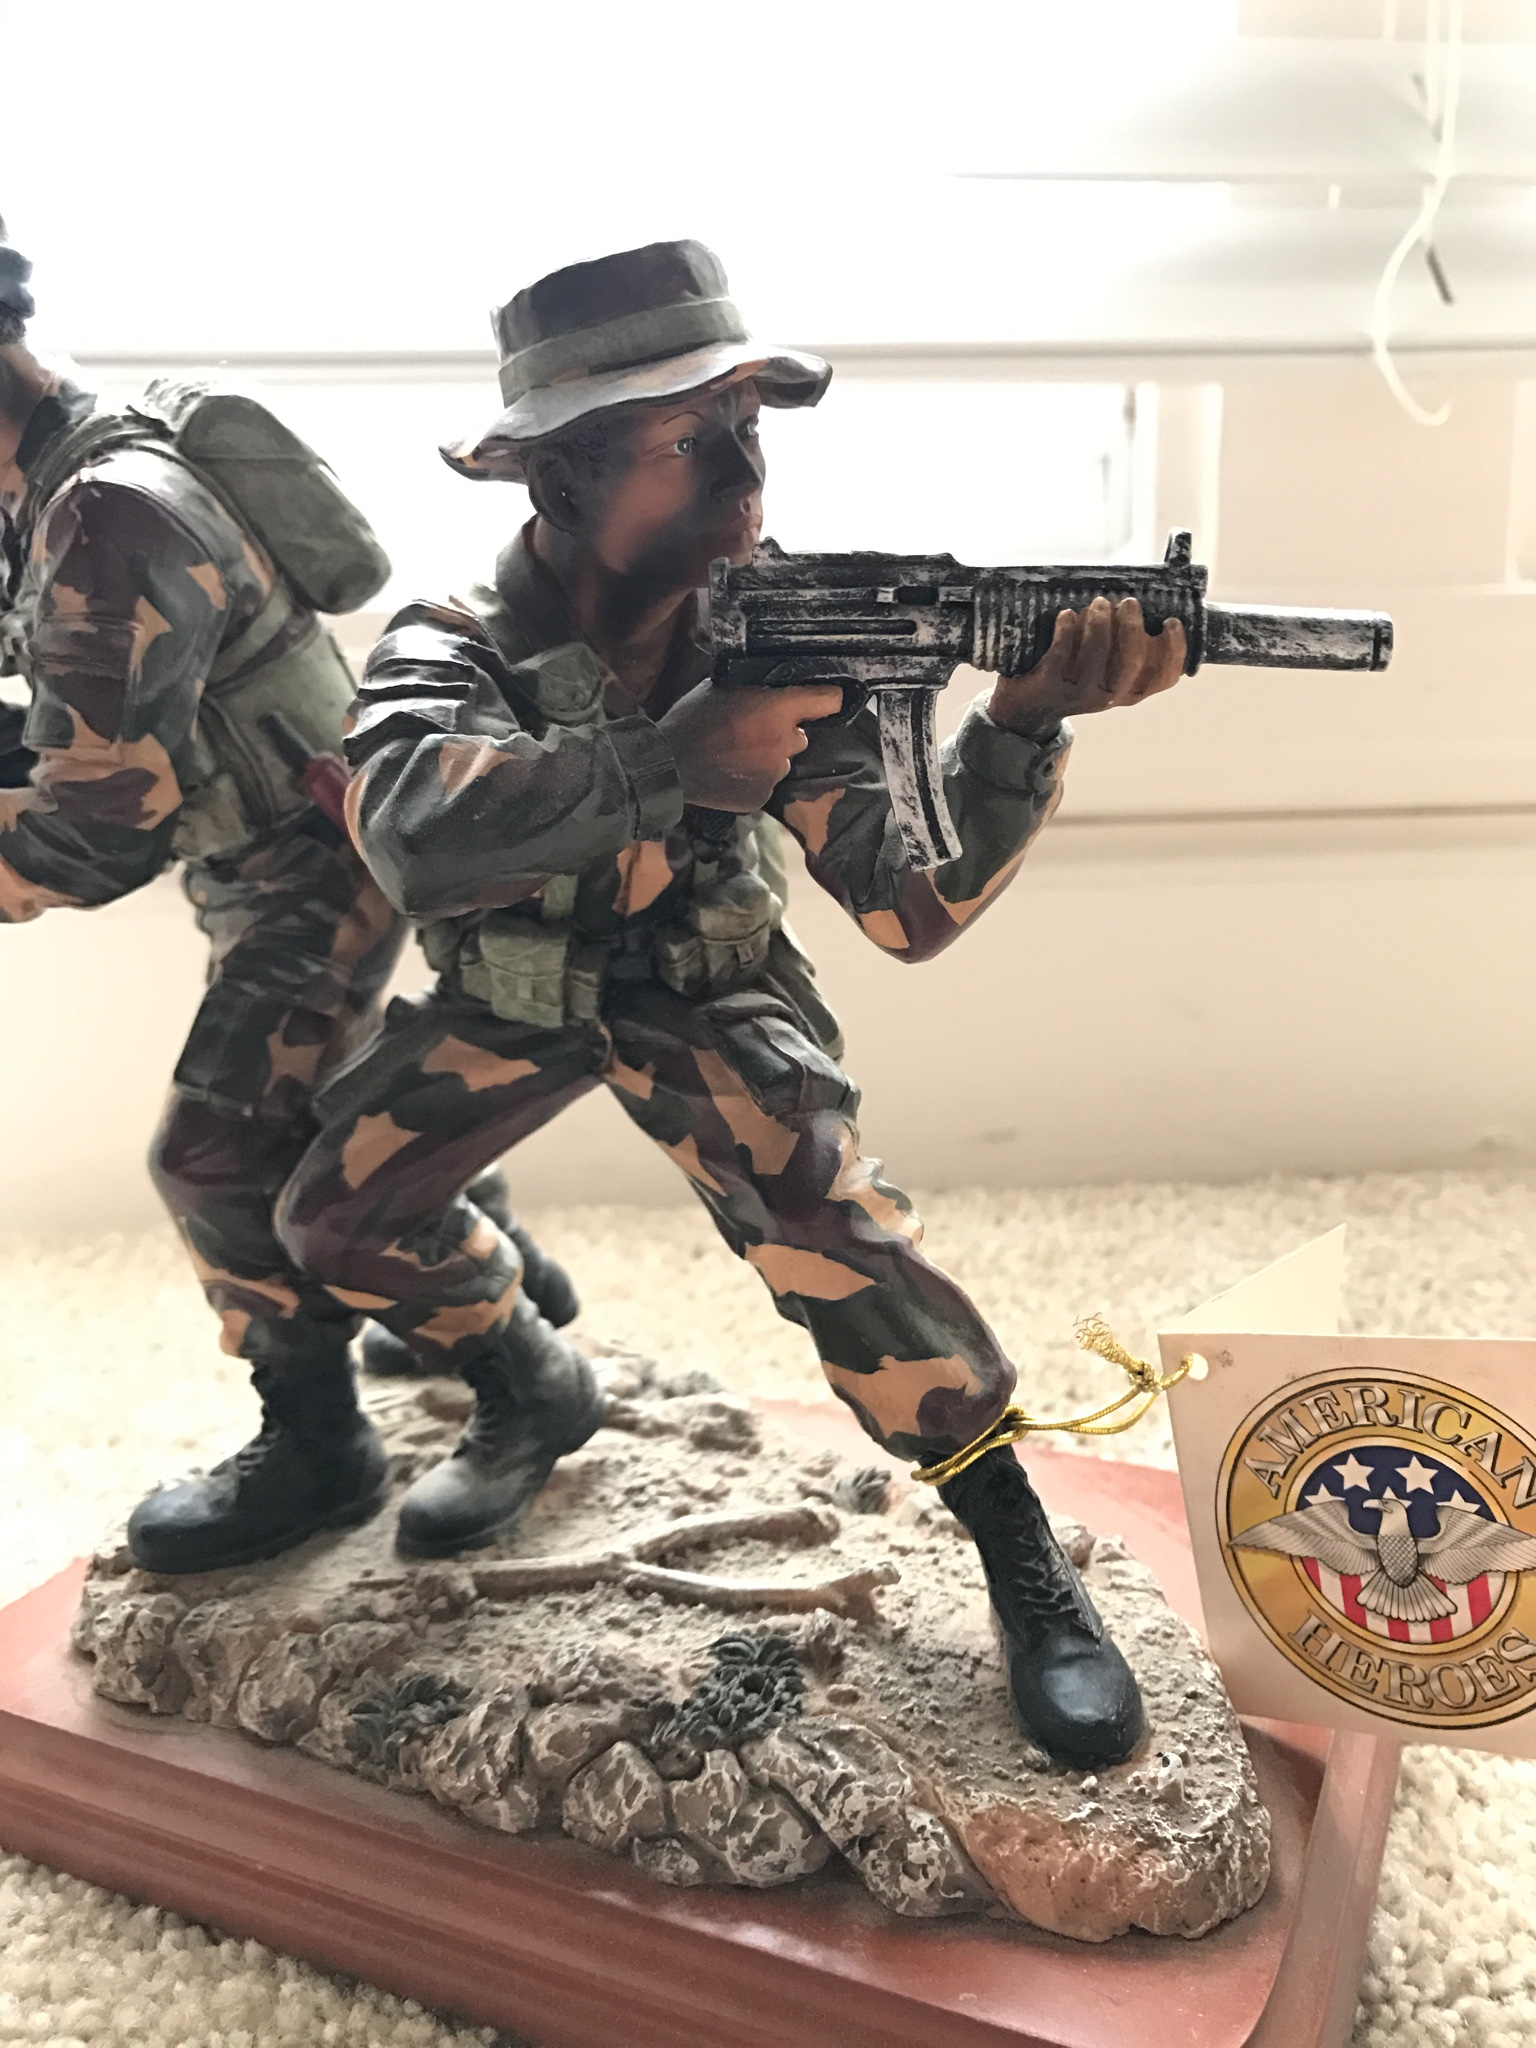 80s Swat Guy With Mp5 Statue Cool Antique Store Find Page 5 What An Interesting Thread Heres A Little Ive Owned For Few Years It Depicts Navy Seals